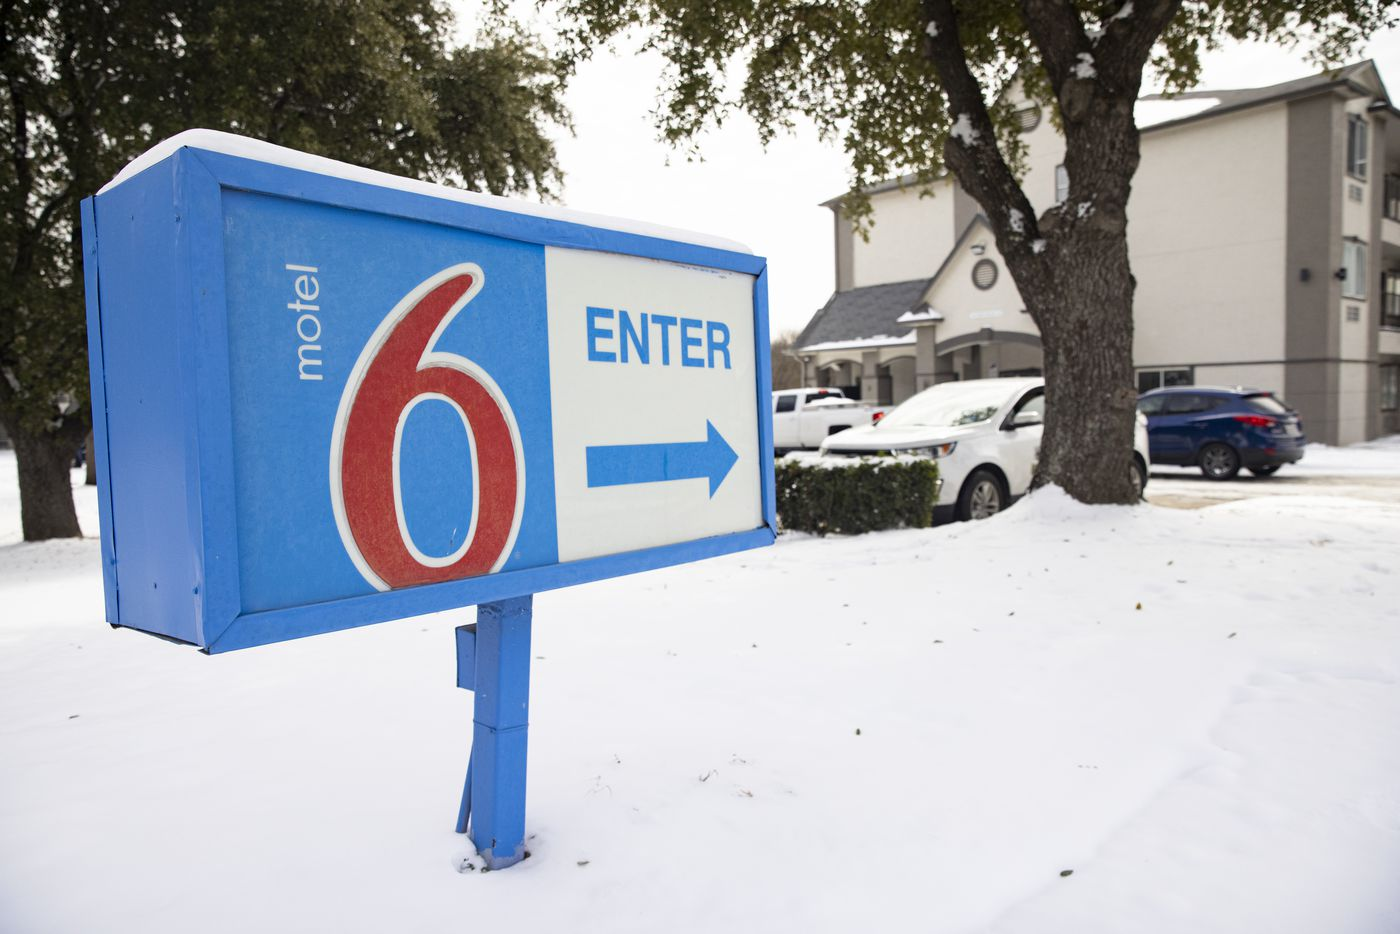 People are turned away due the Motel 6 in North Arlington losing power on Tuesday, Feb. 16, 2021. (Juan Figueroa/ The Dallas Morning News)